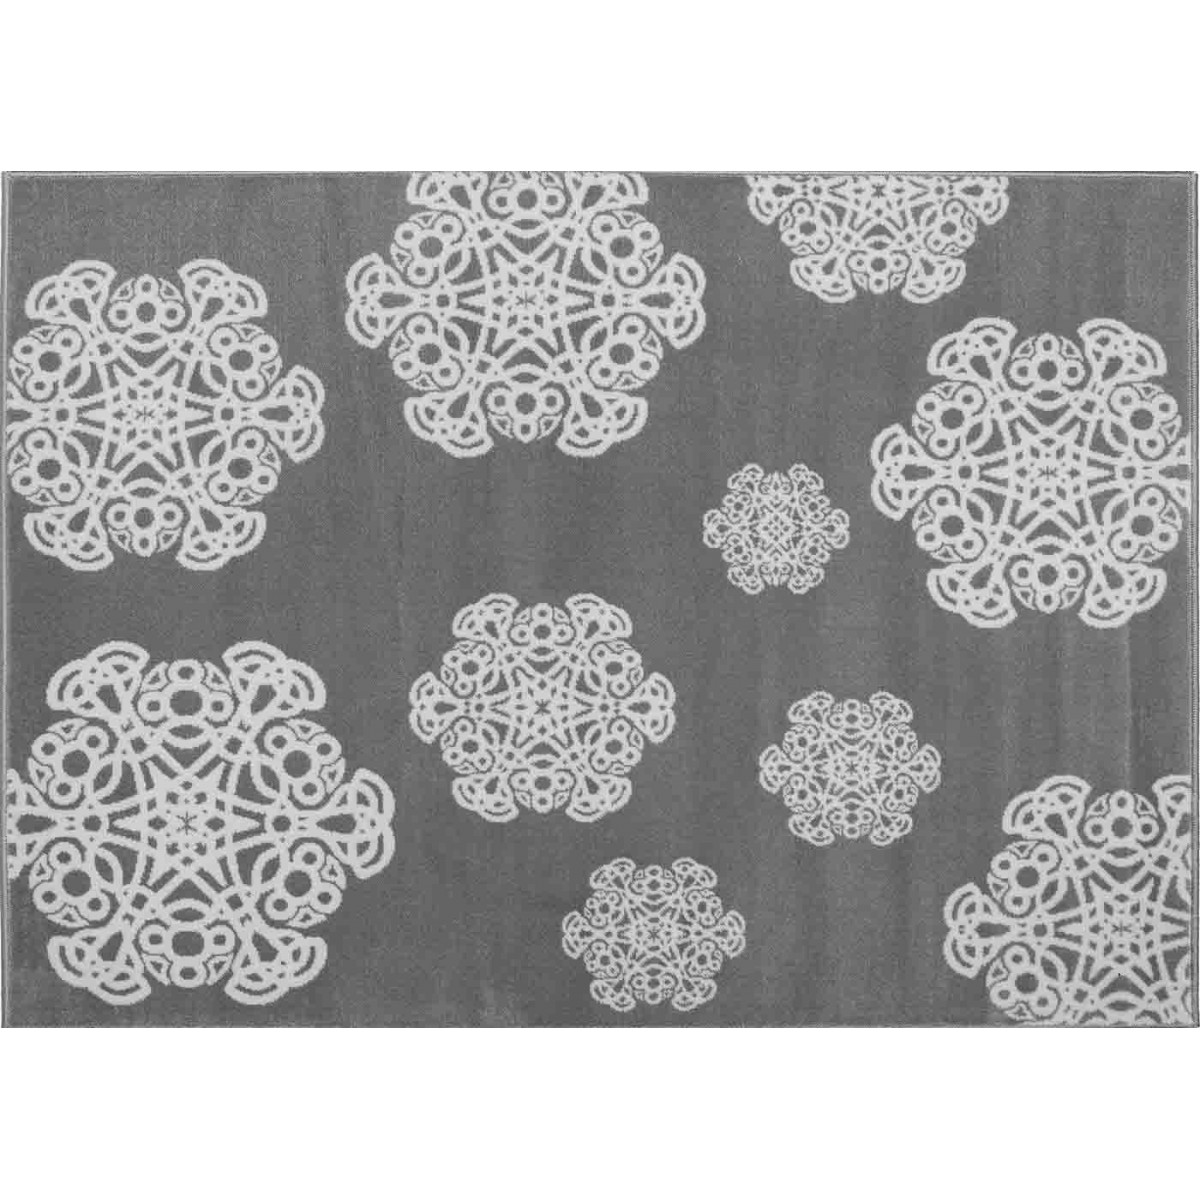 tapis graphique tendance mandala sign aratextil. Black Bedroom Furniture Sets. Home Design Ideas